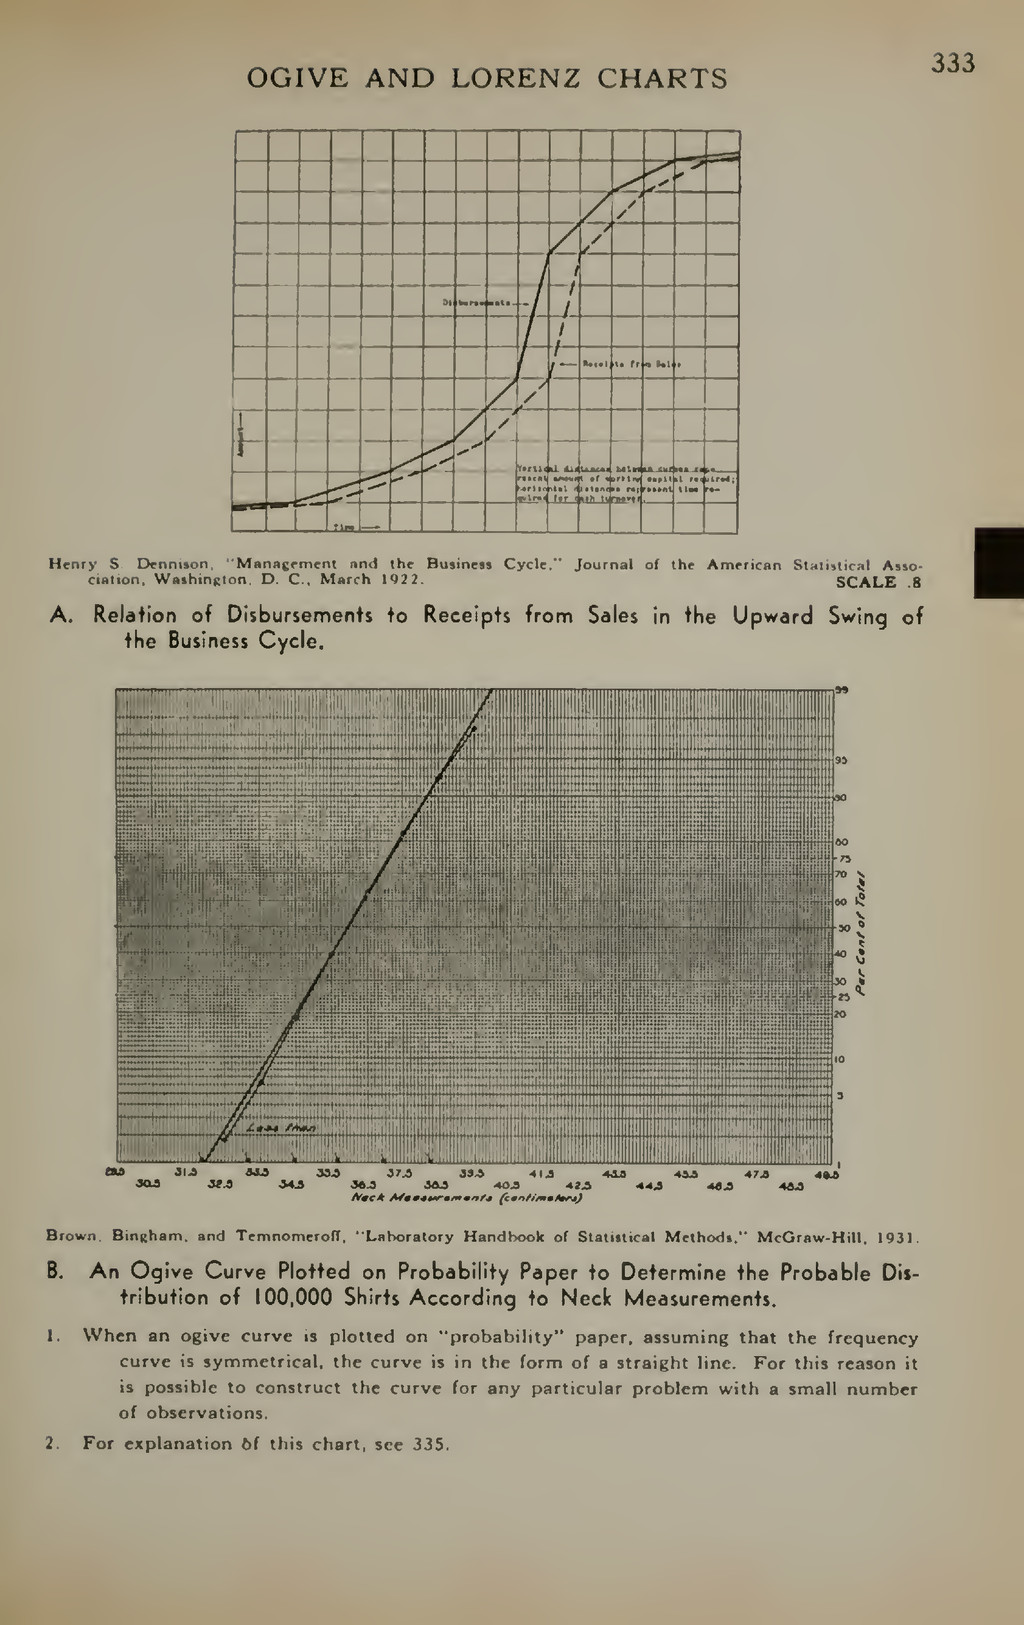 OGIVE AND LORENZ CHARTS 333 Henry S. Dfnniton. ...